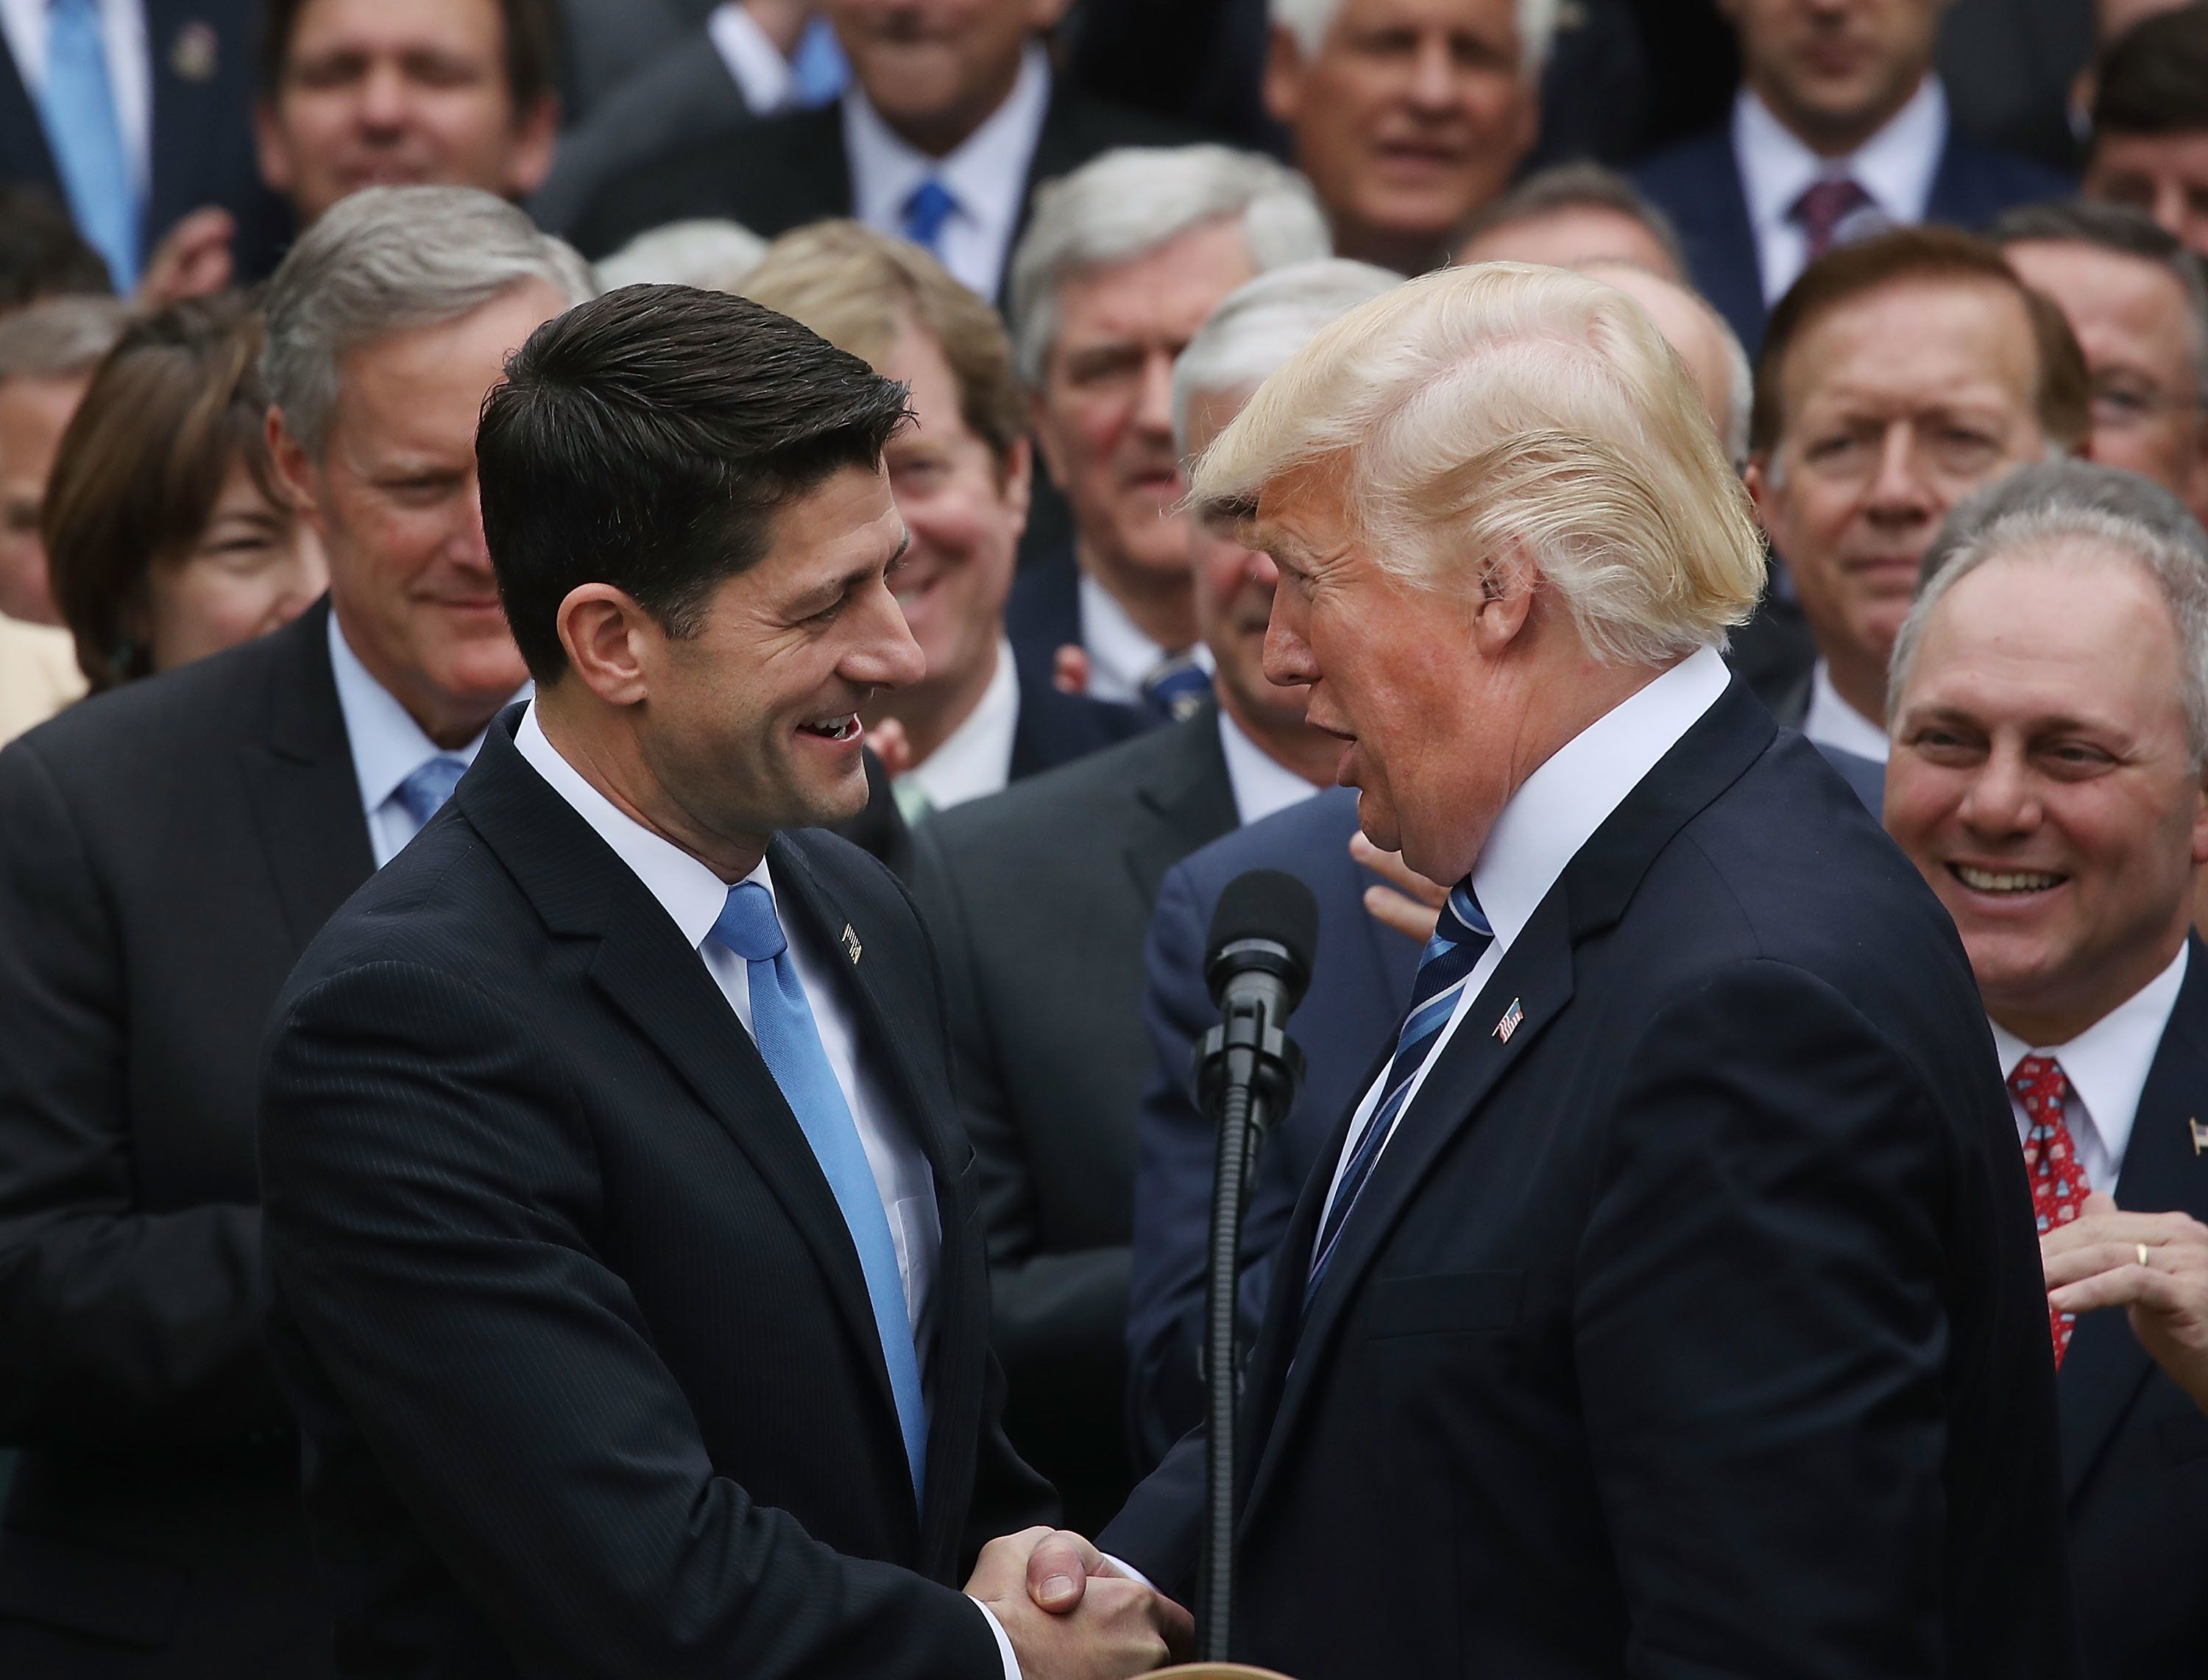 U.S. President Donald Trump congratulates House Speaker Paul Ryan (R-WI) after Republicans passed legislation aimed at repeal